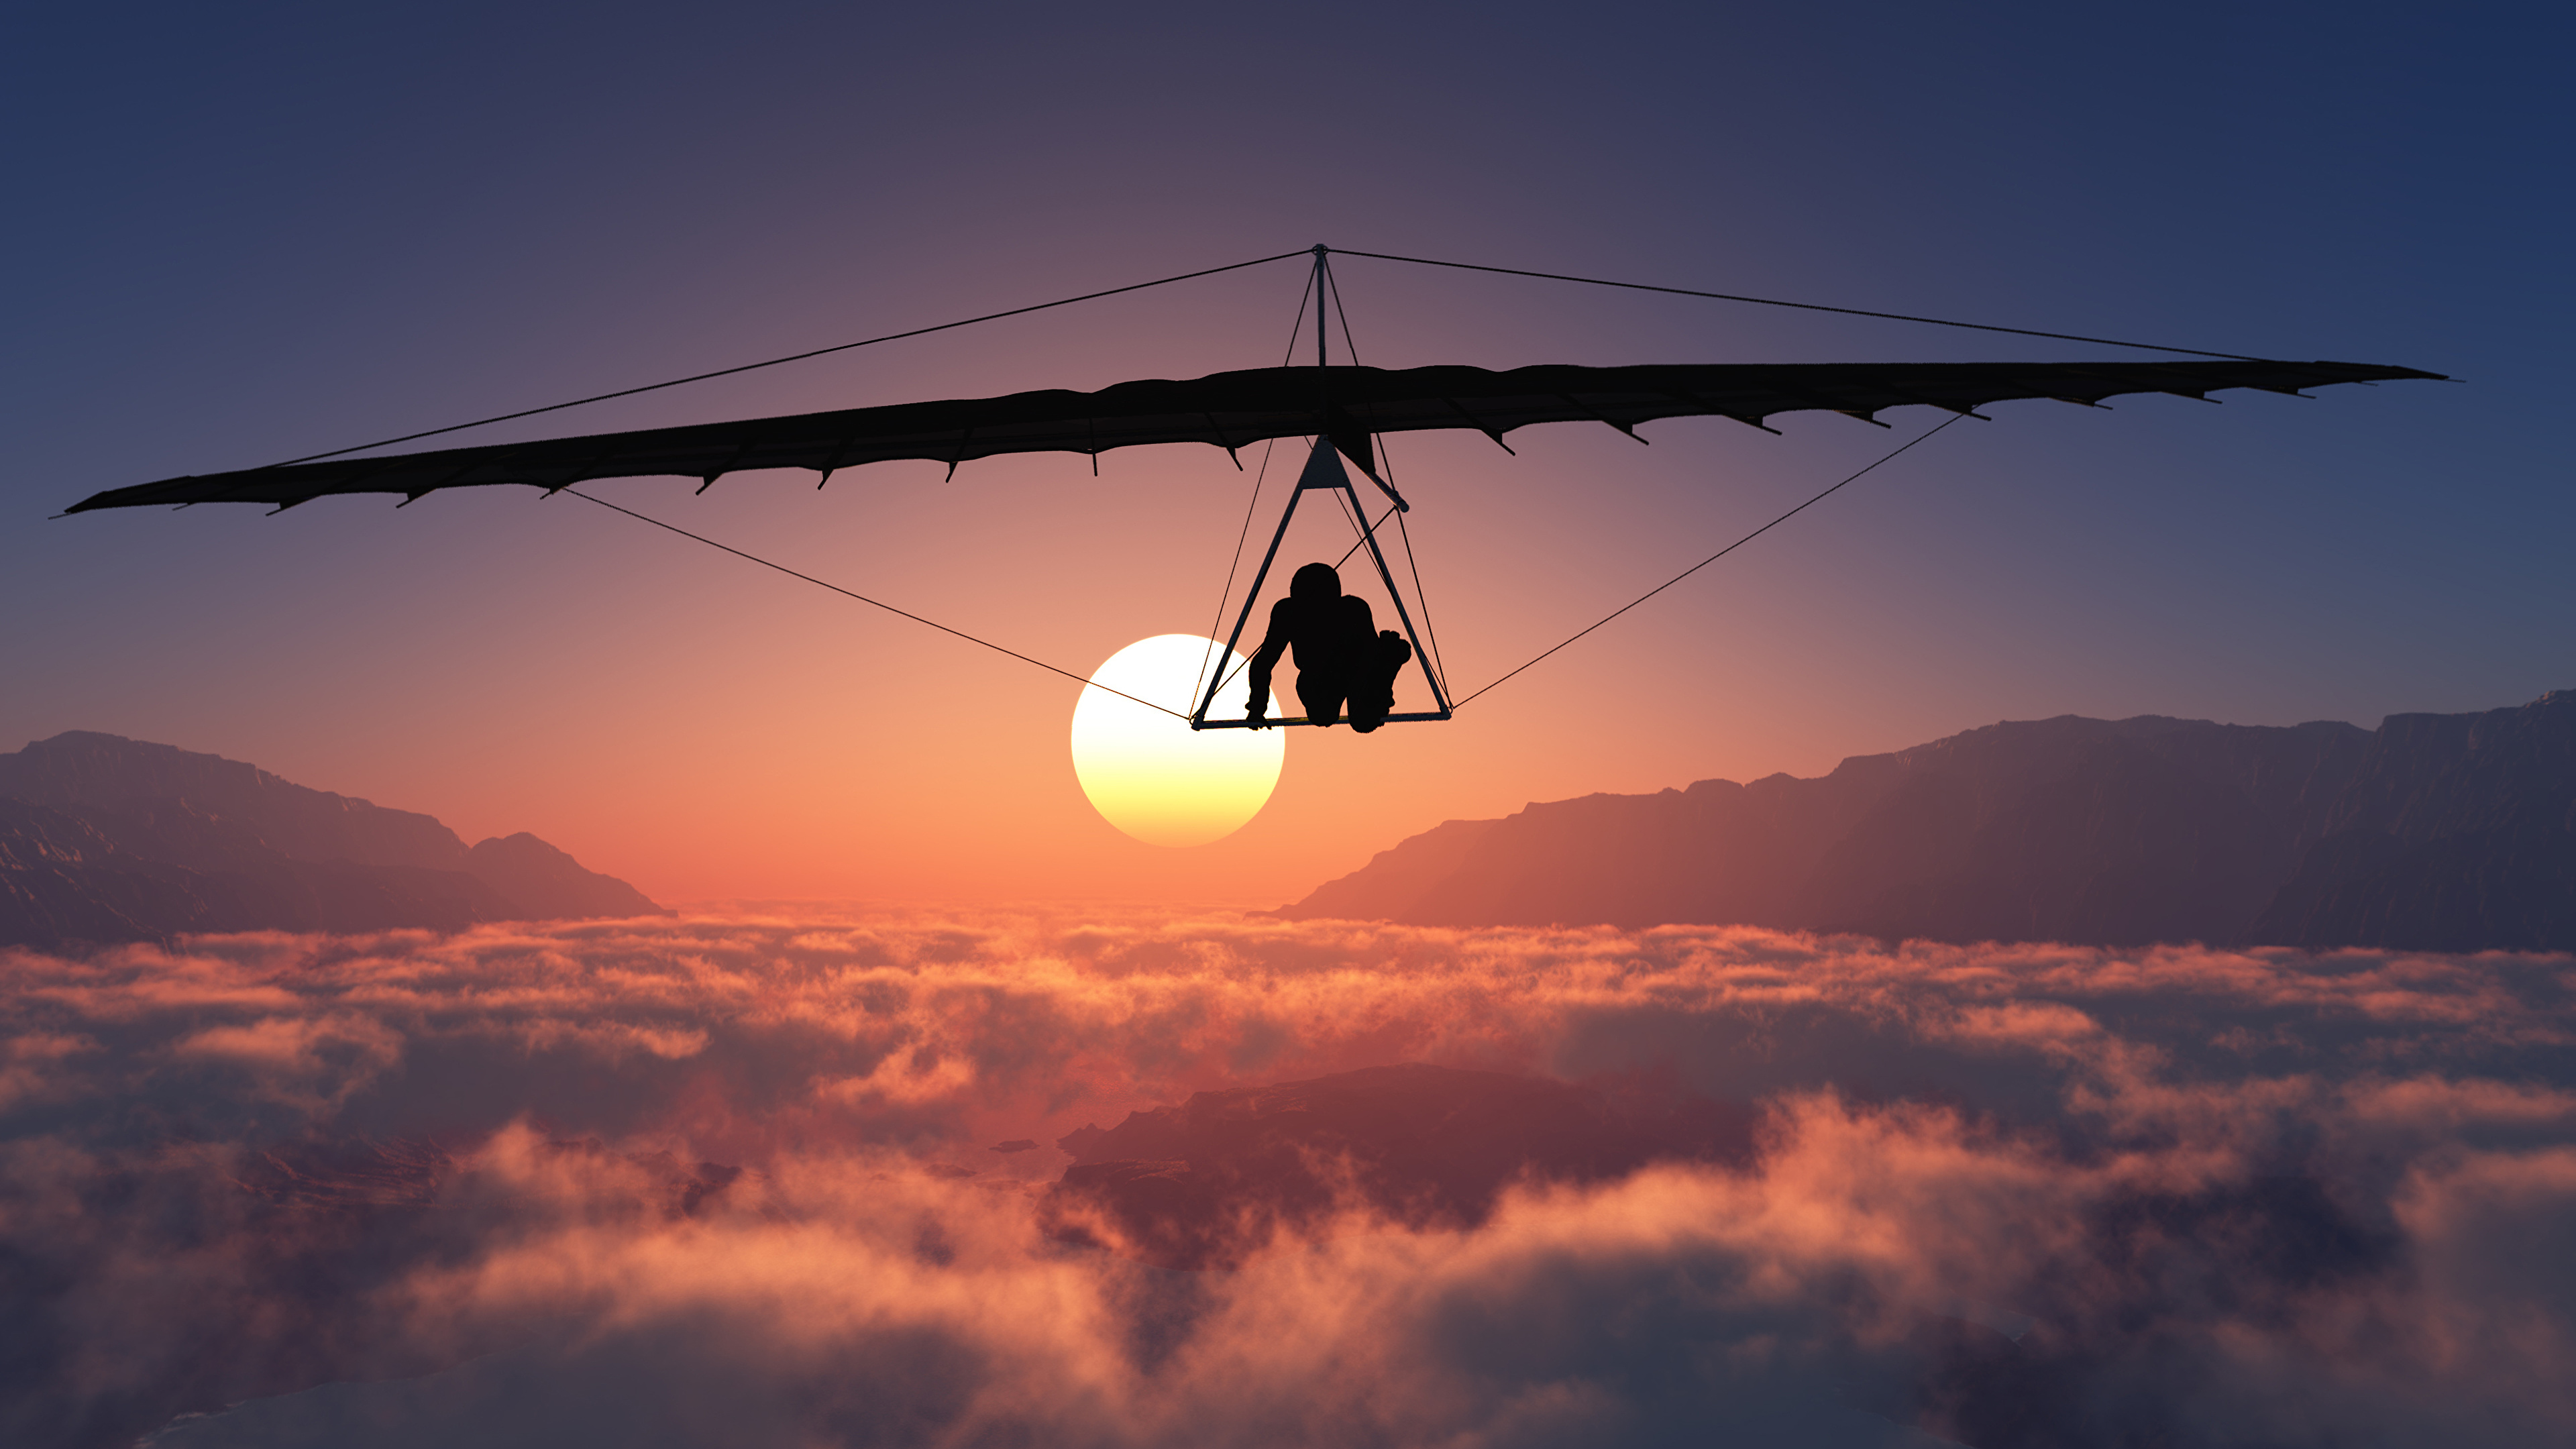 3840x2160 - Hang Gliding Wallpapers 4